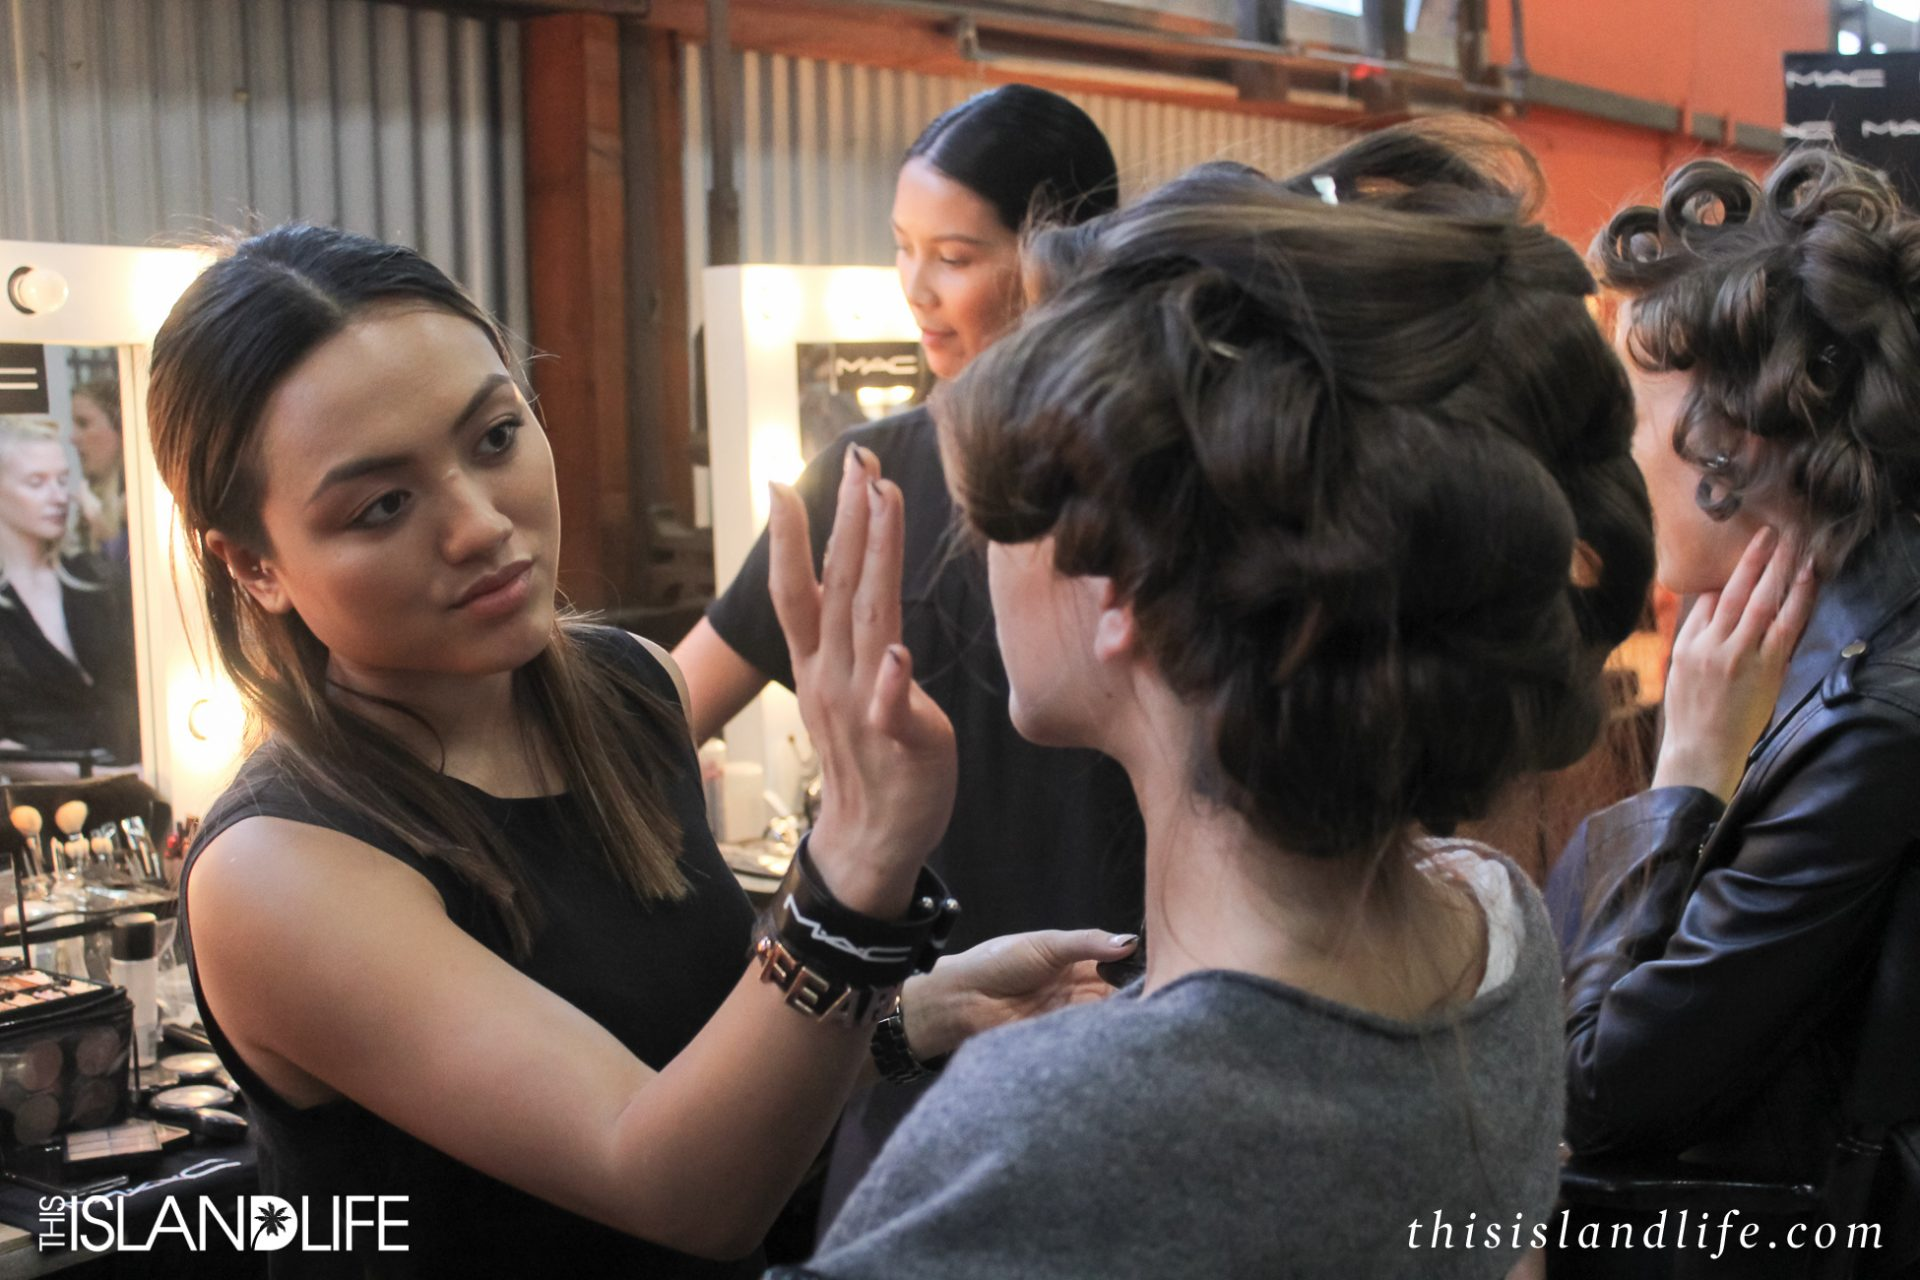 This Island Life | Mercedes Benz Fashion Week Australia Sydney - Backstage at Bec & Bridge